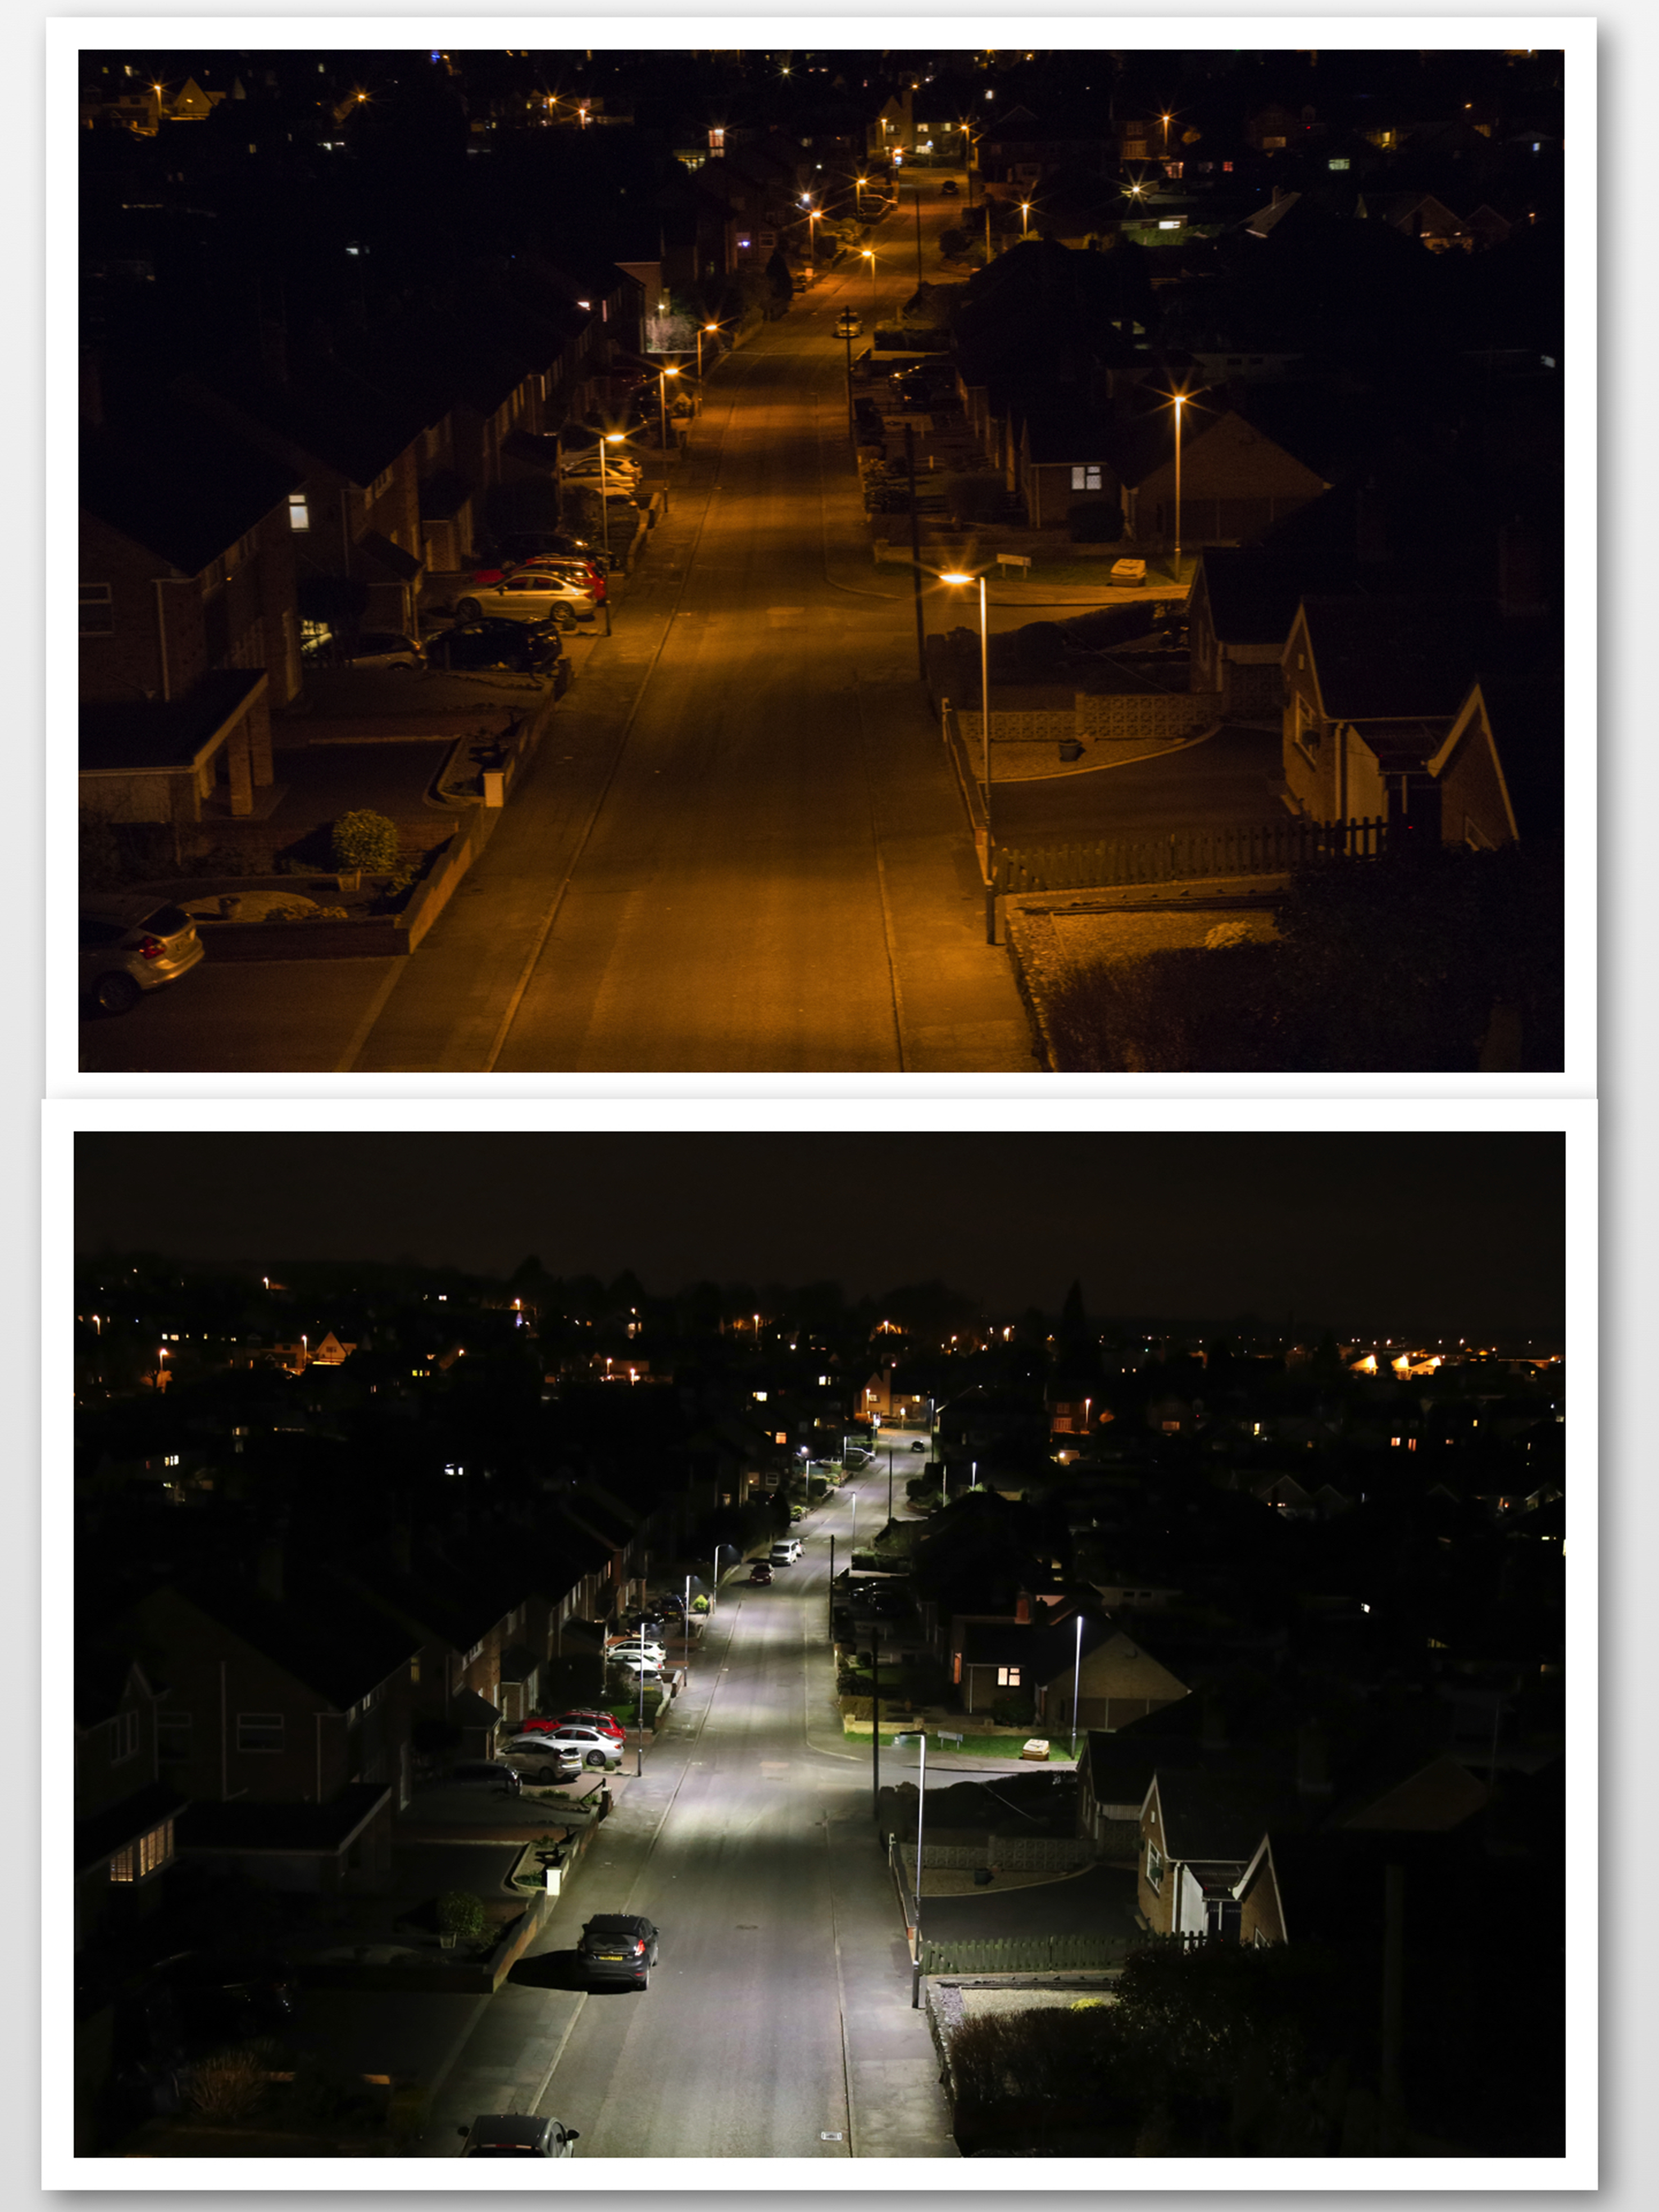 Comparison of traditional sodium lighting with LED lighting in typical British suburban street